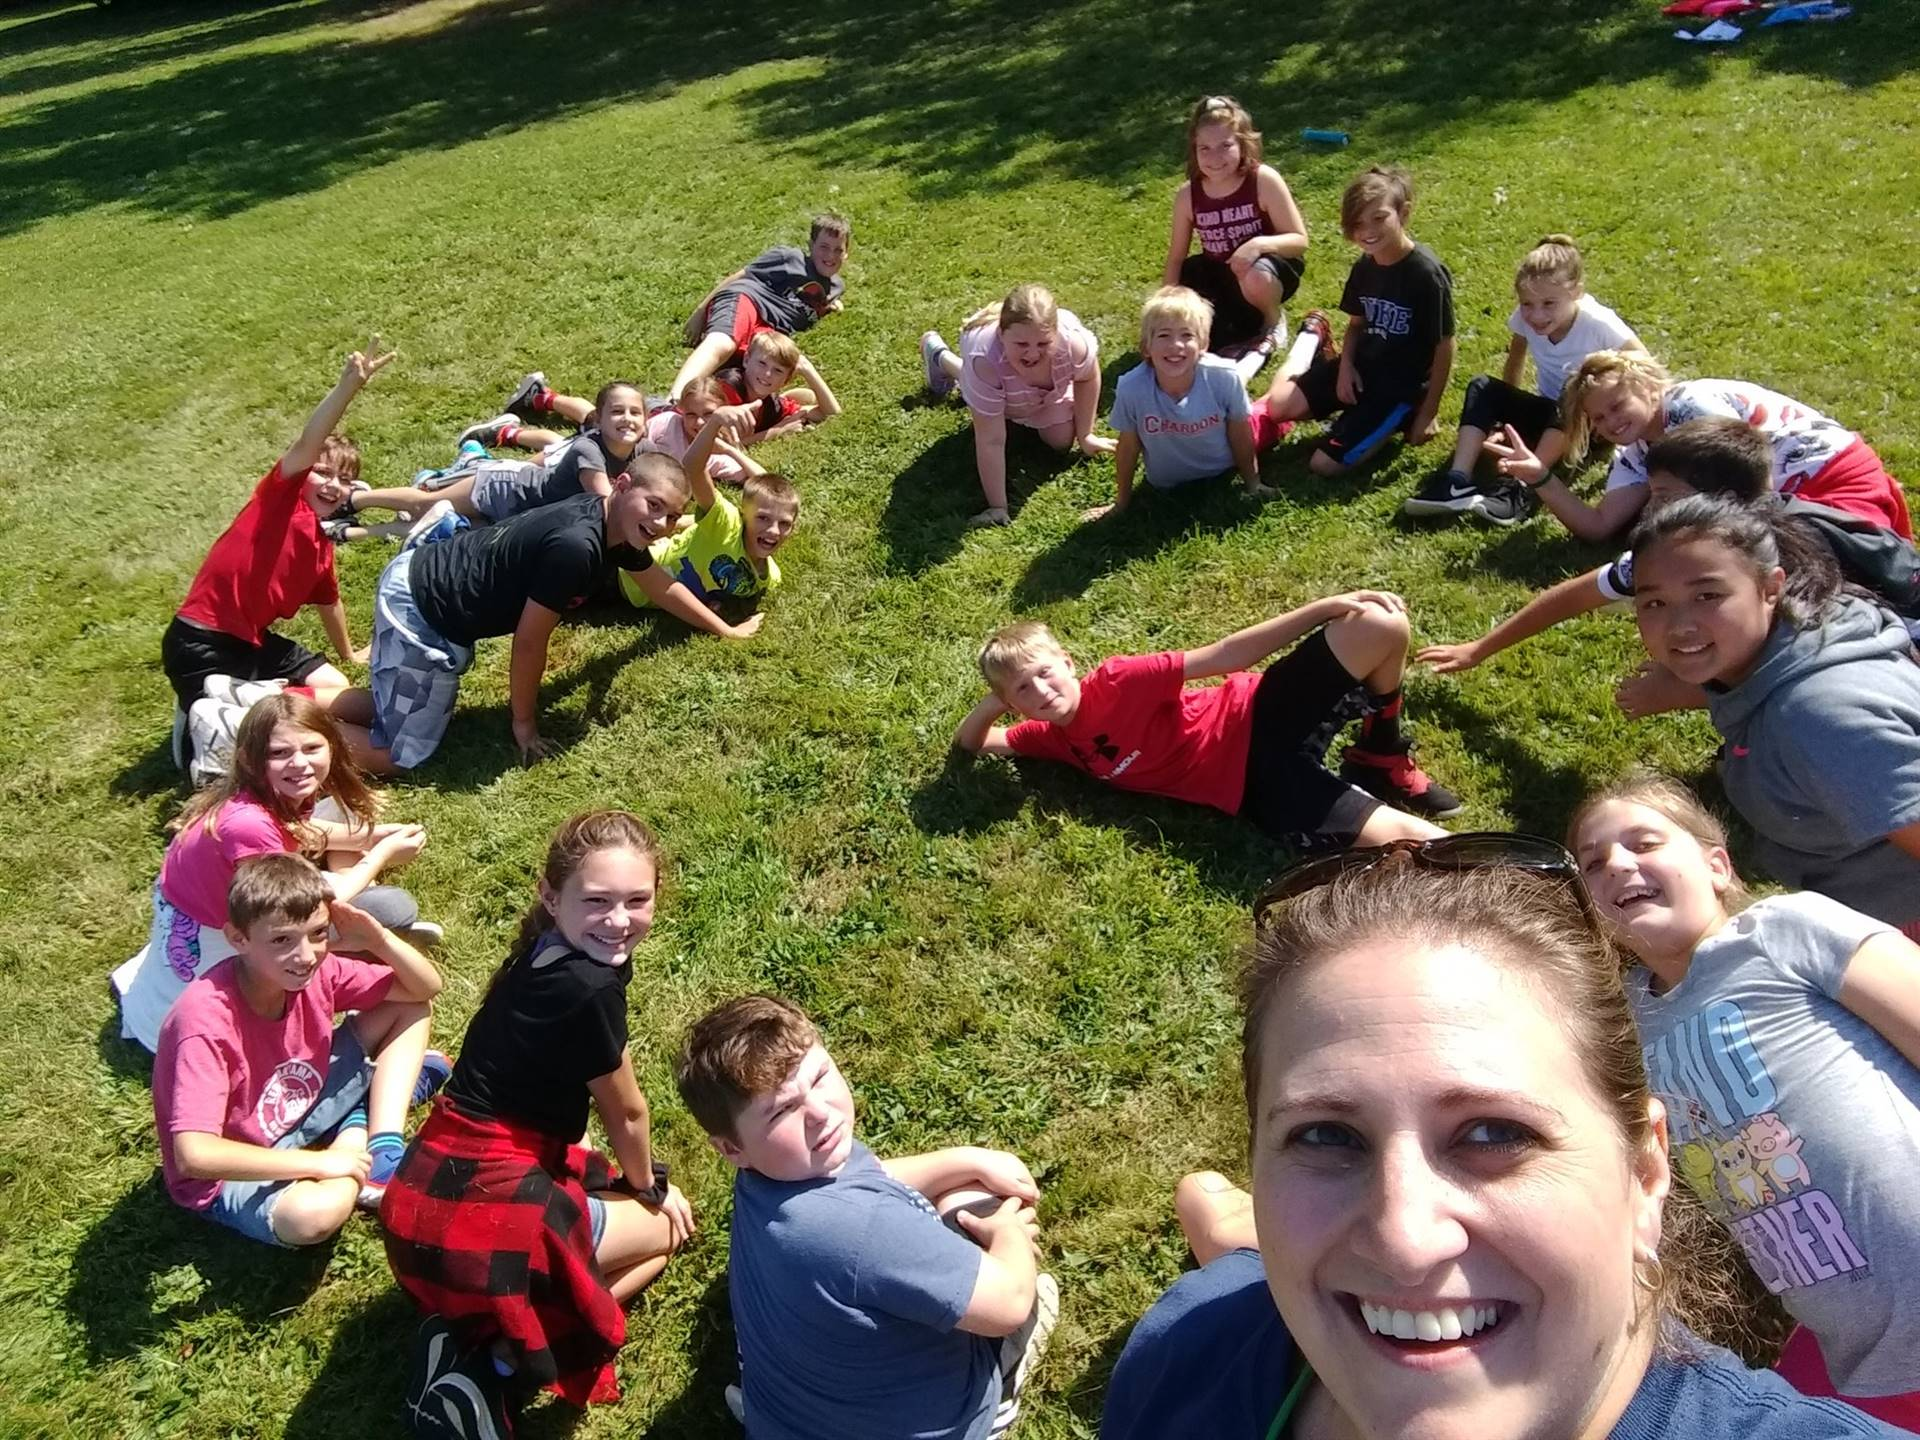 Photo 2:  CMS math teacher Mrs. Mele with her students gathered outside on the grass for Field Day 2